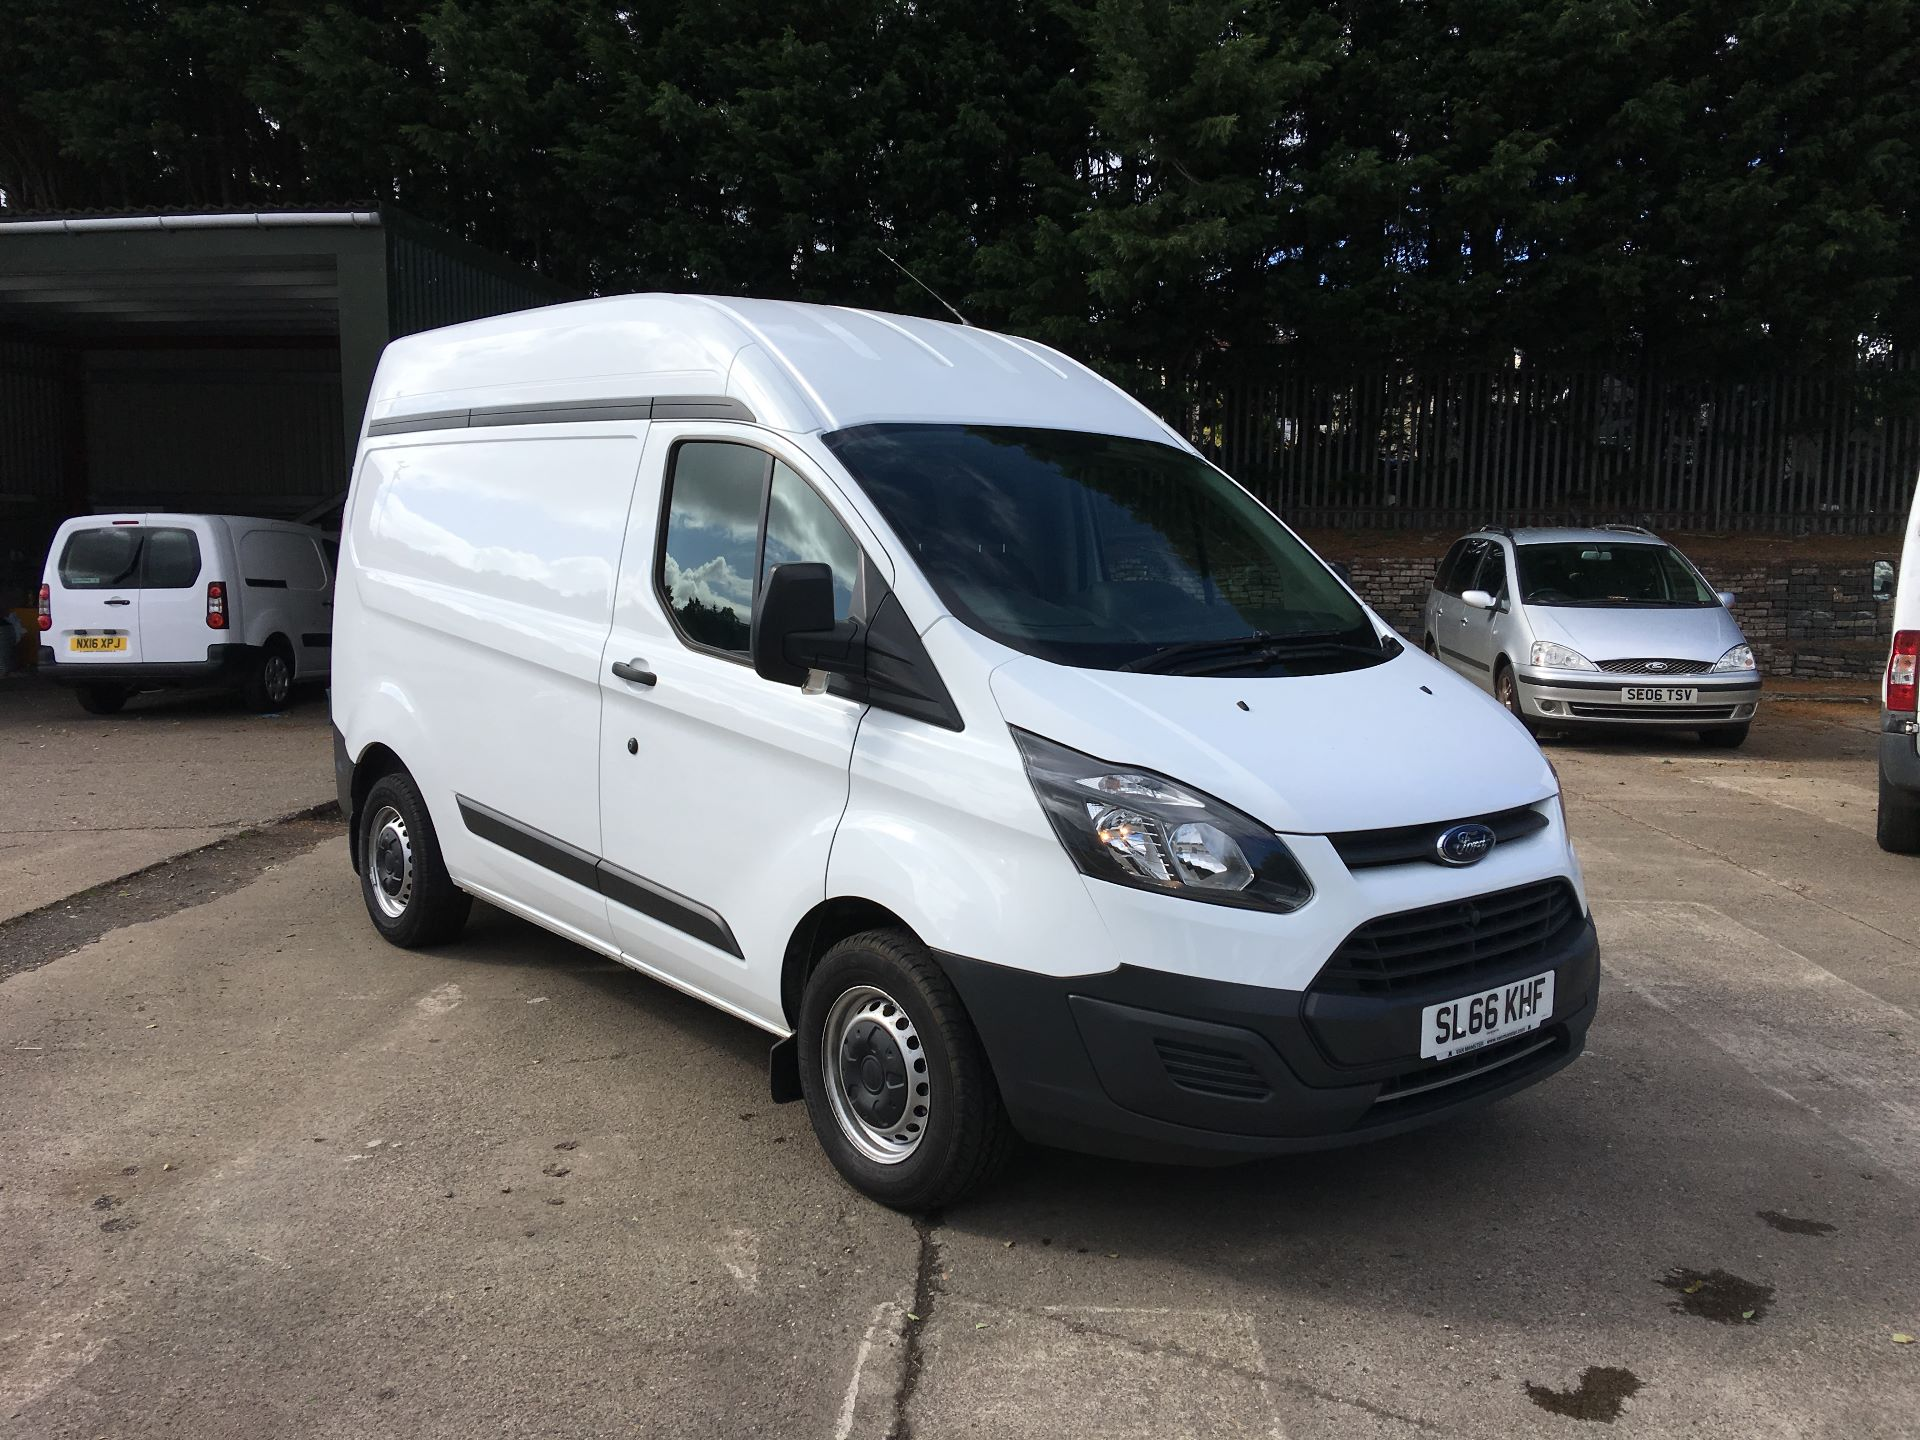 2016 Ford Transit Custom 290 L1 DIESEL FWD 2.0 TDCI 105PS HIGH ROOF VAN EURO 6 (SL66KHF)